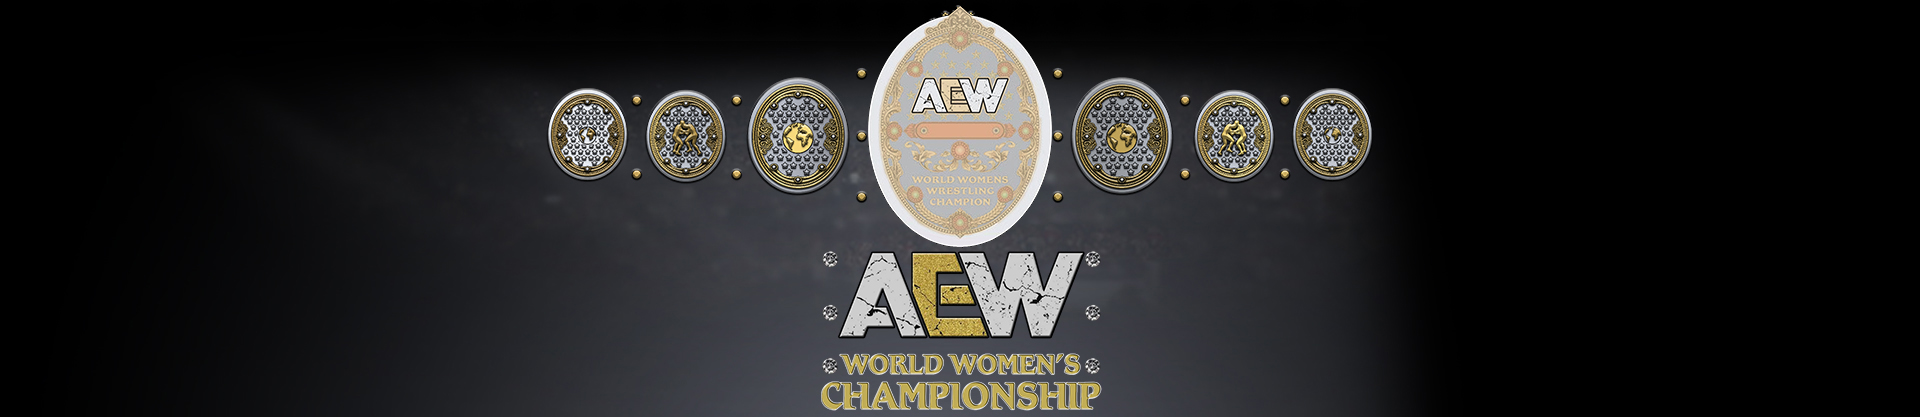 AEW Women's World Championship/Champion gallery